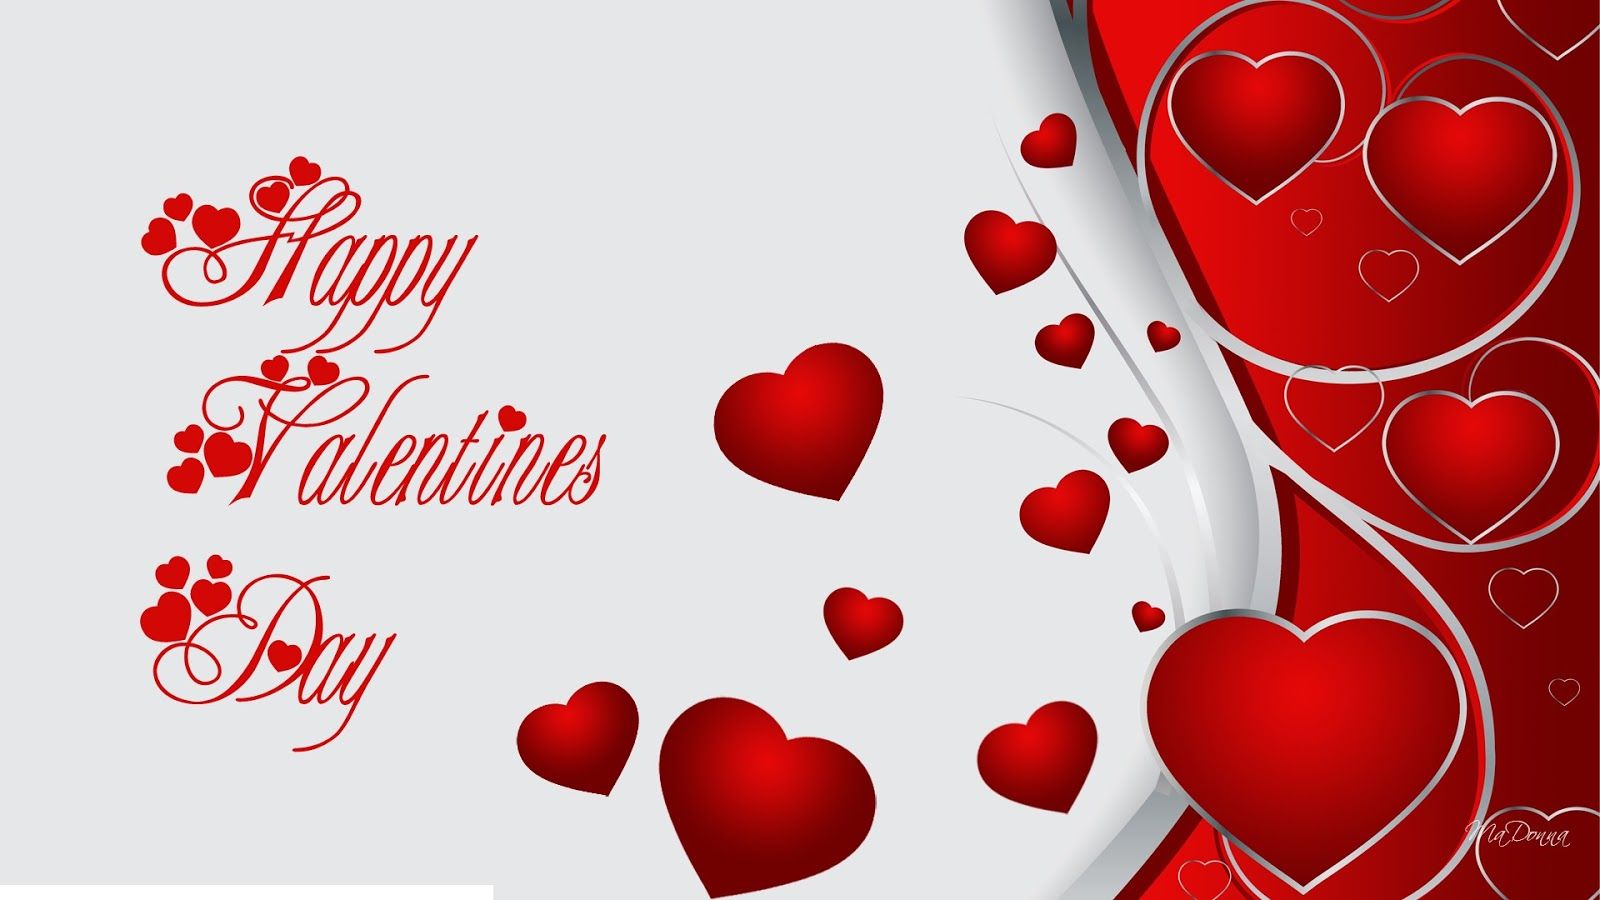 Happy Valentines Day Images 2018 For Lovers, Couples, Girlfriend ...